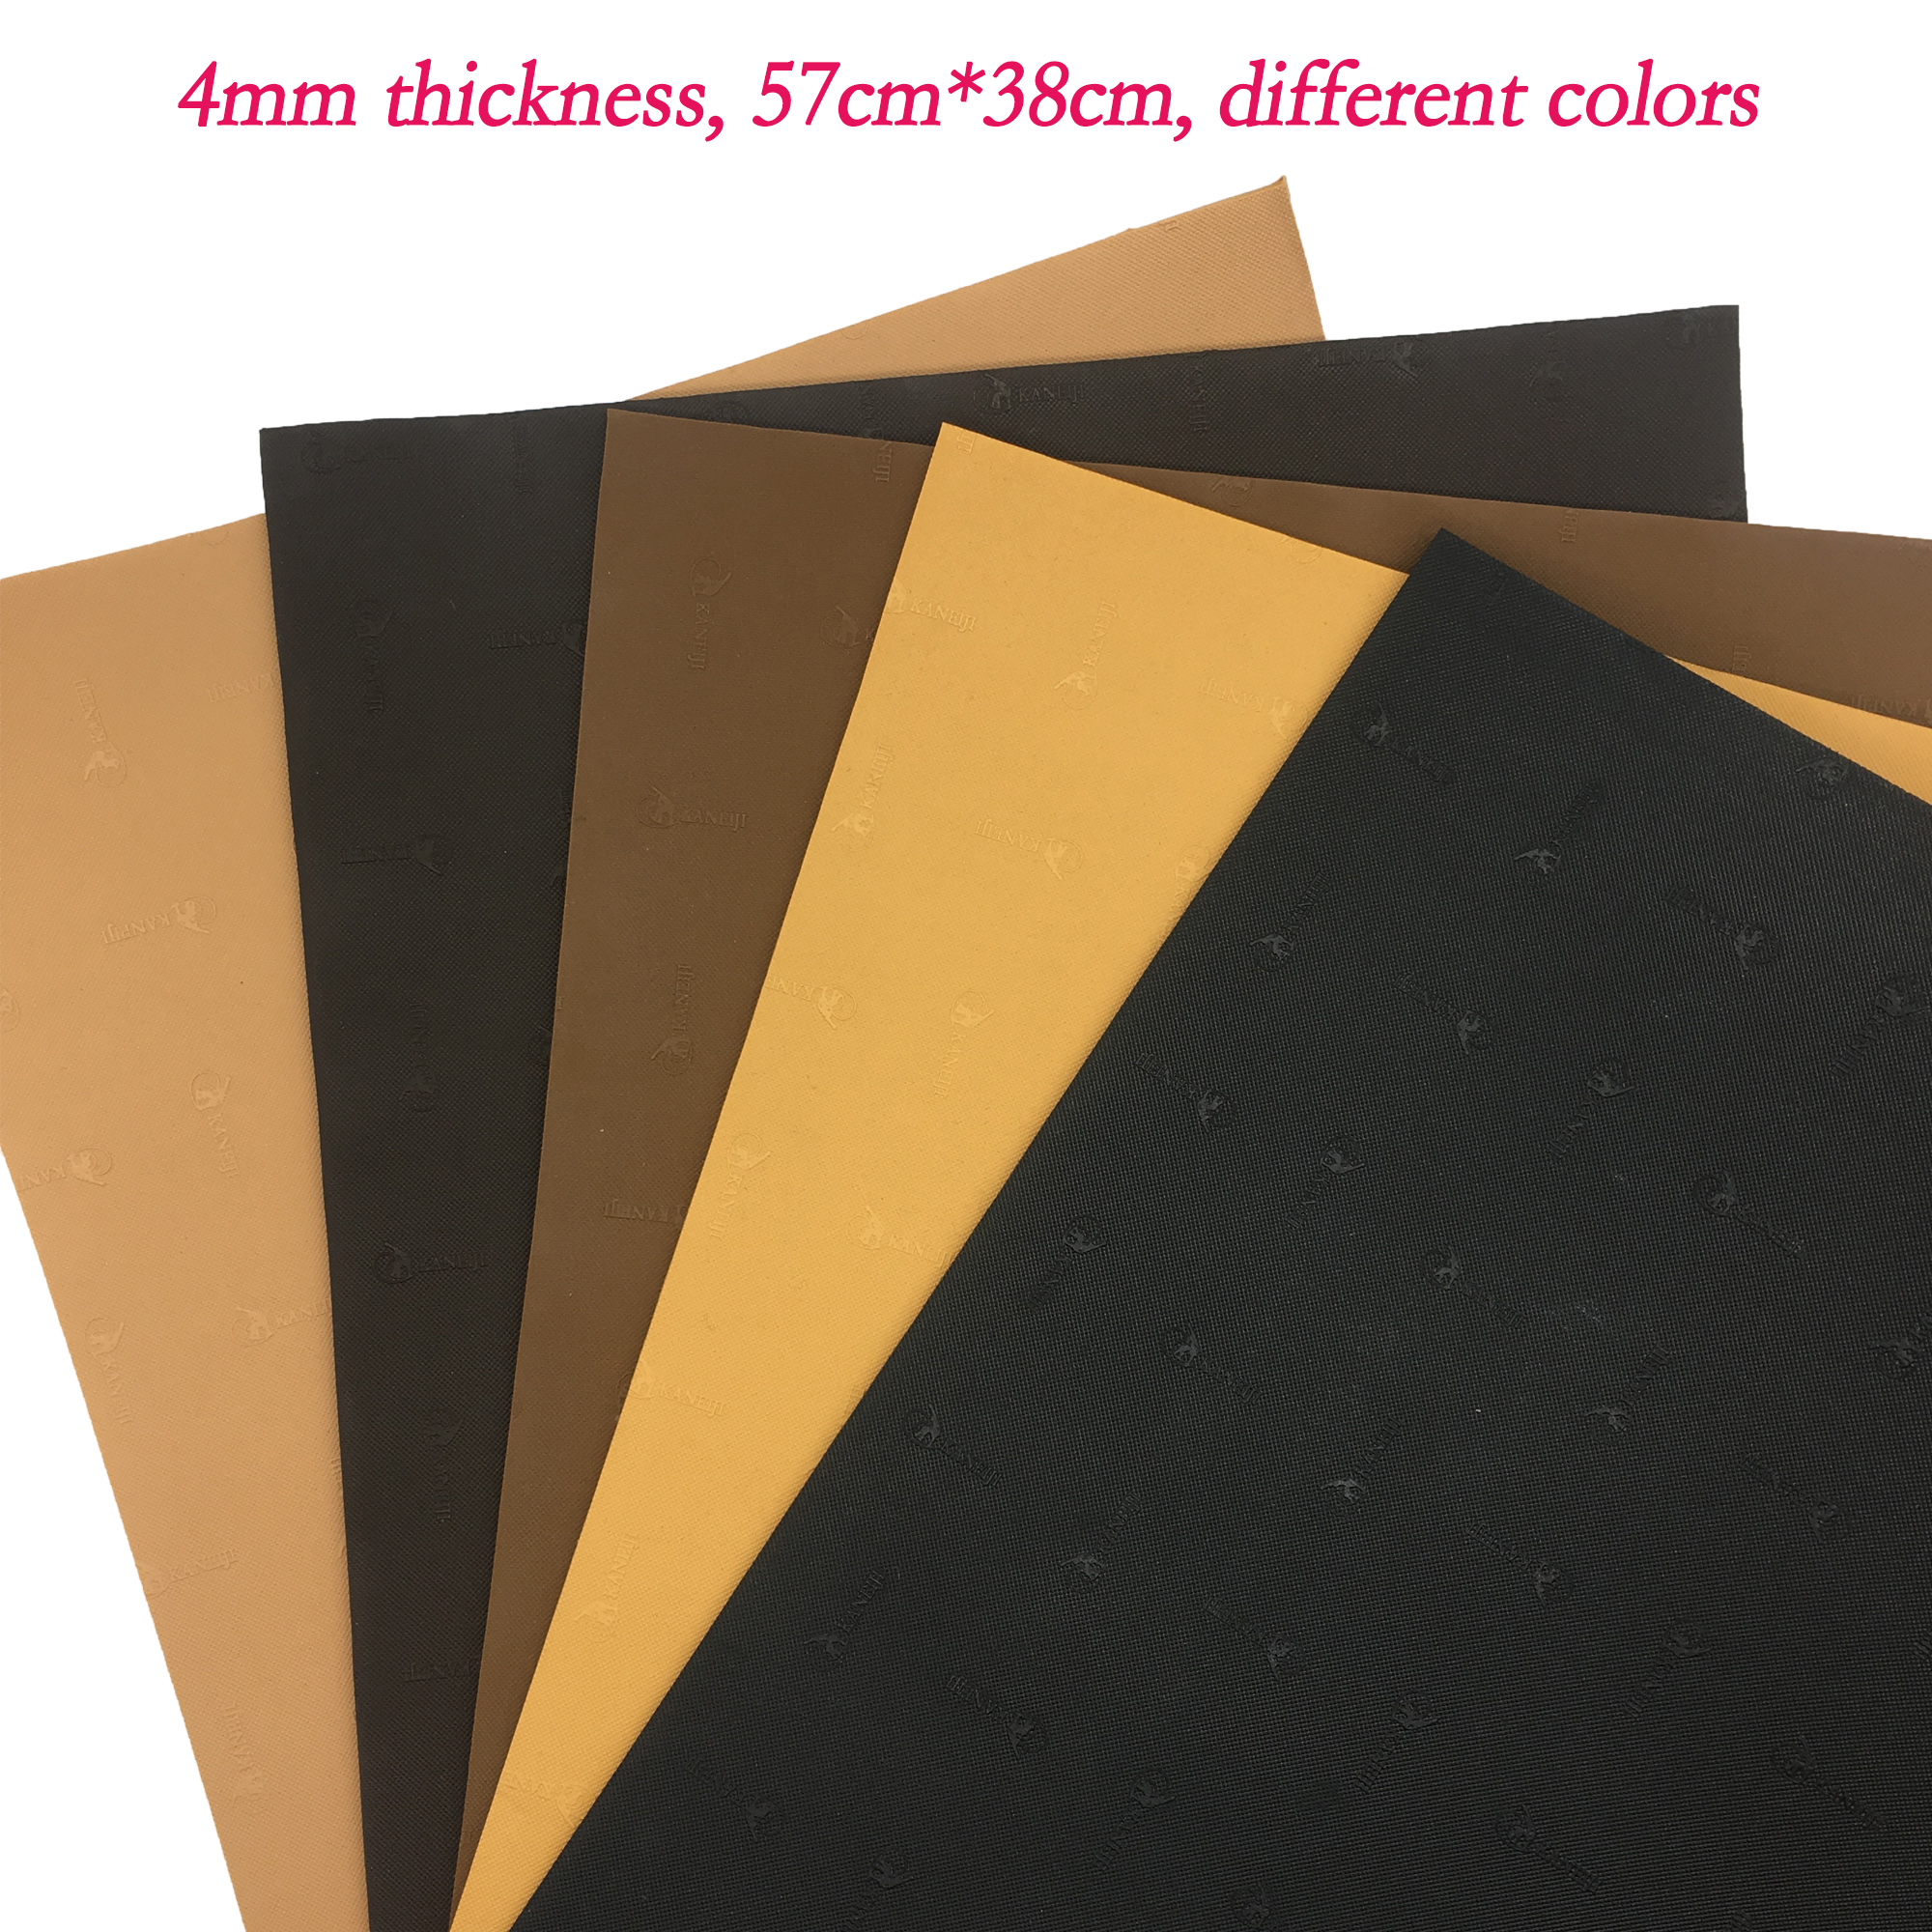 KANEIJI 4mm Thickness Repair Shoes Rubber Sheet, Out Sole Rubber Sheet, Heel Rubber Sheet, Cutting Rubber Sheet